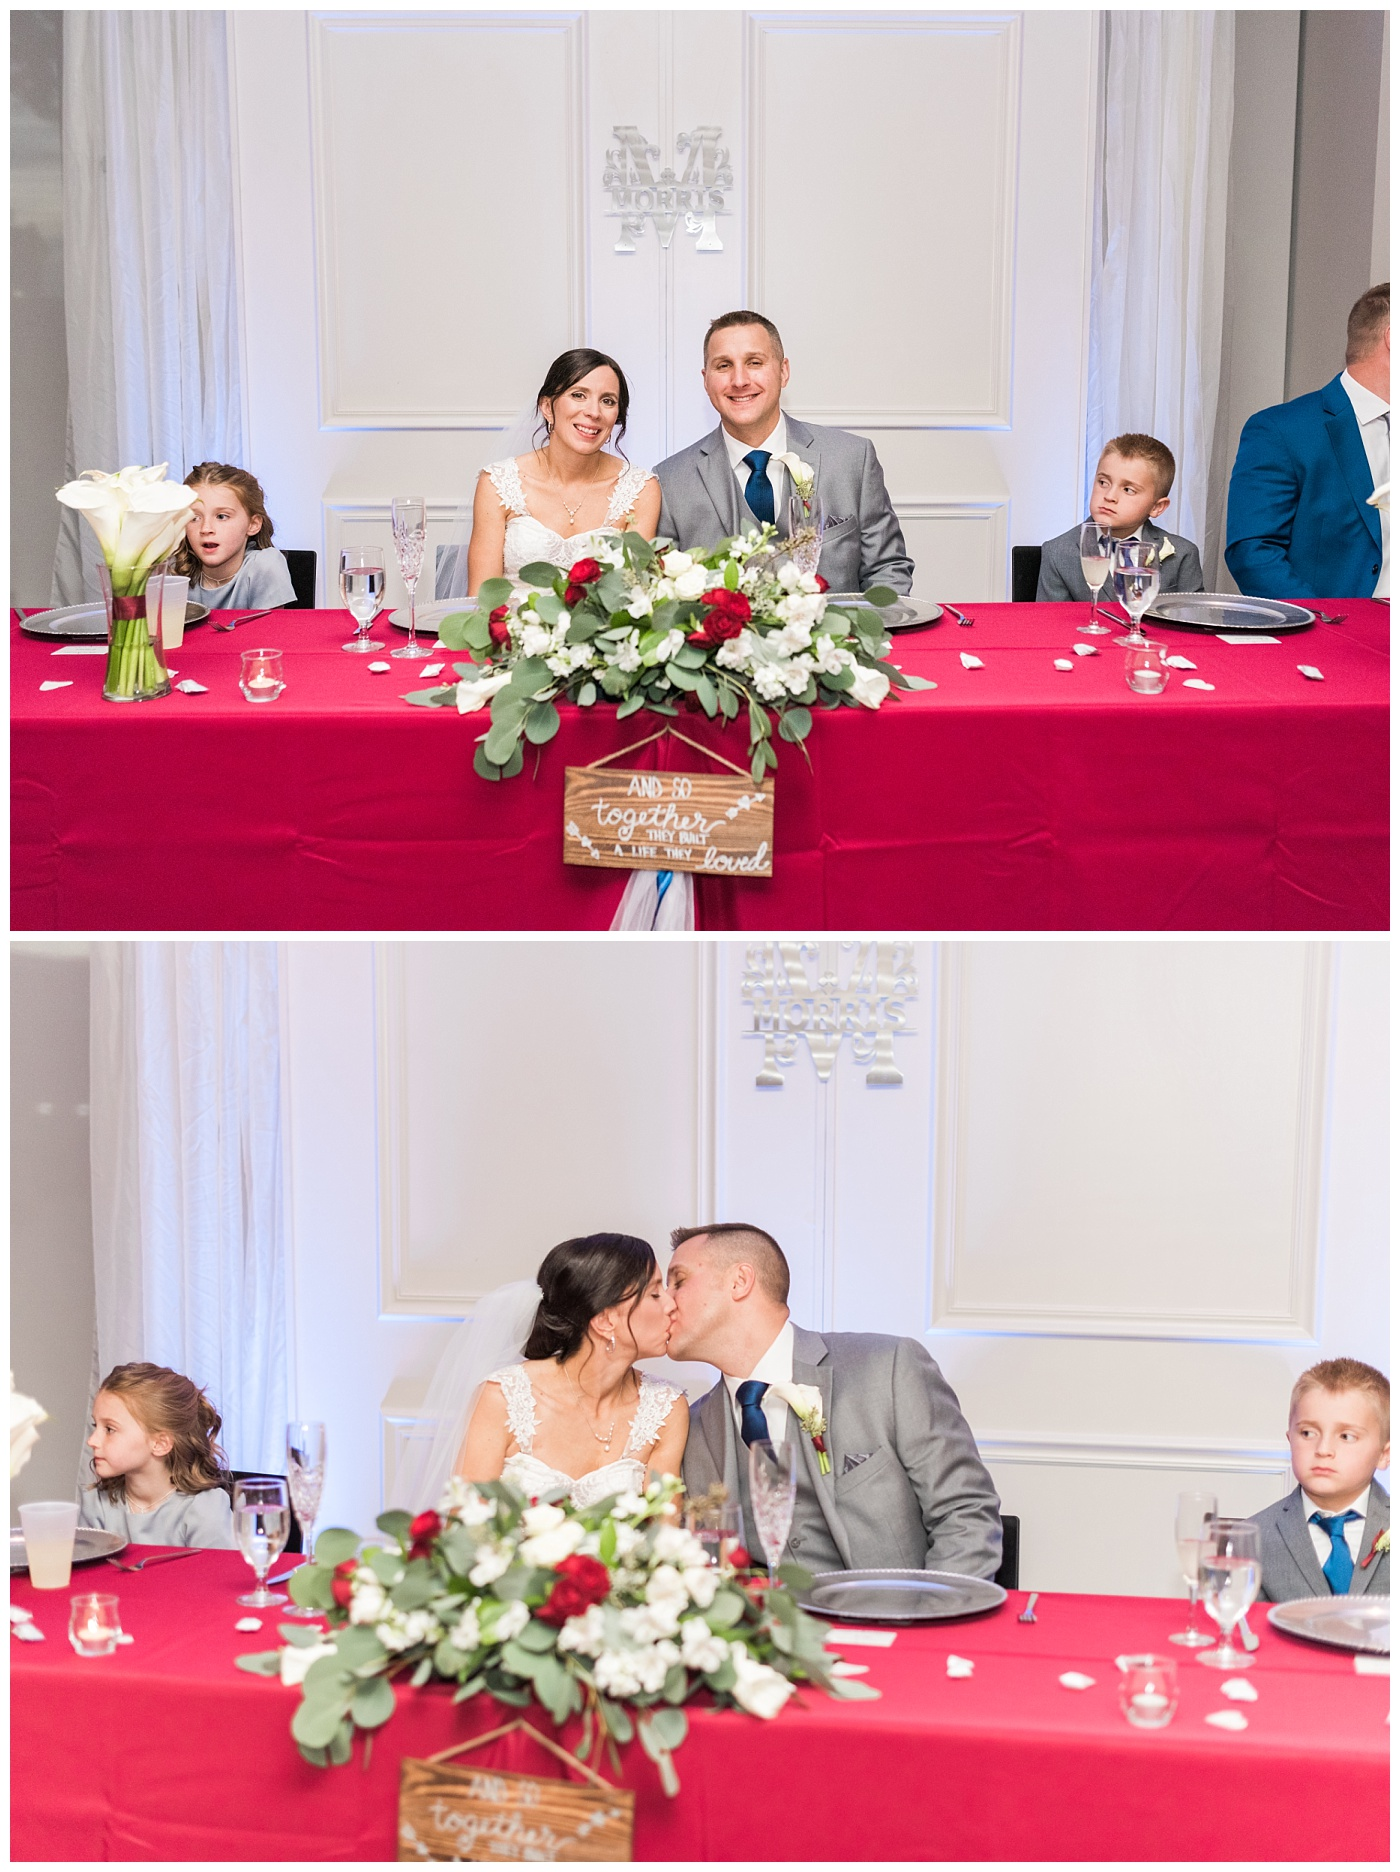 Stephanie Marie Photography St Mark's Lutheran Church Eastbank Venue and Lounge Reception Cedar Rapids Iowa City Wedding Photographer Jen Nick Morris_0046.jpg